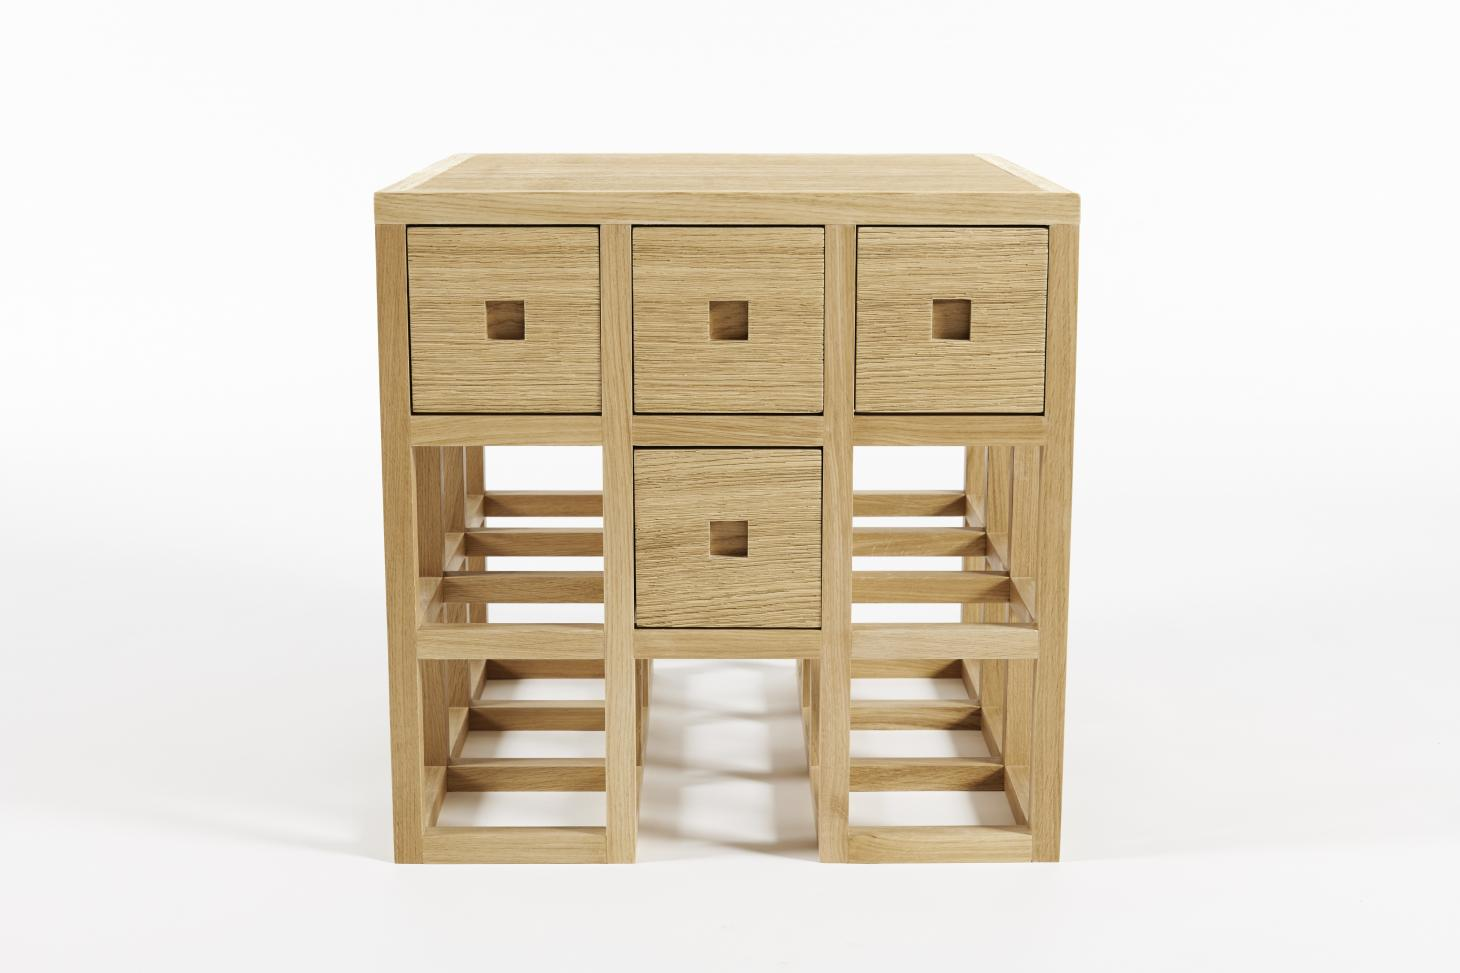 Aria bedside table in oak, by Rena Dumas, reissued by The Invisible Collection and RDAI